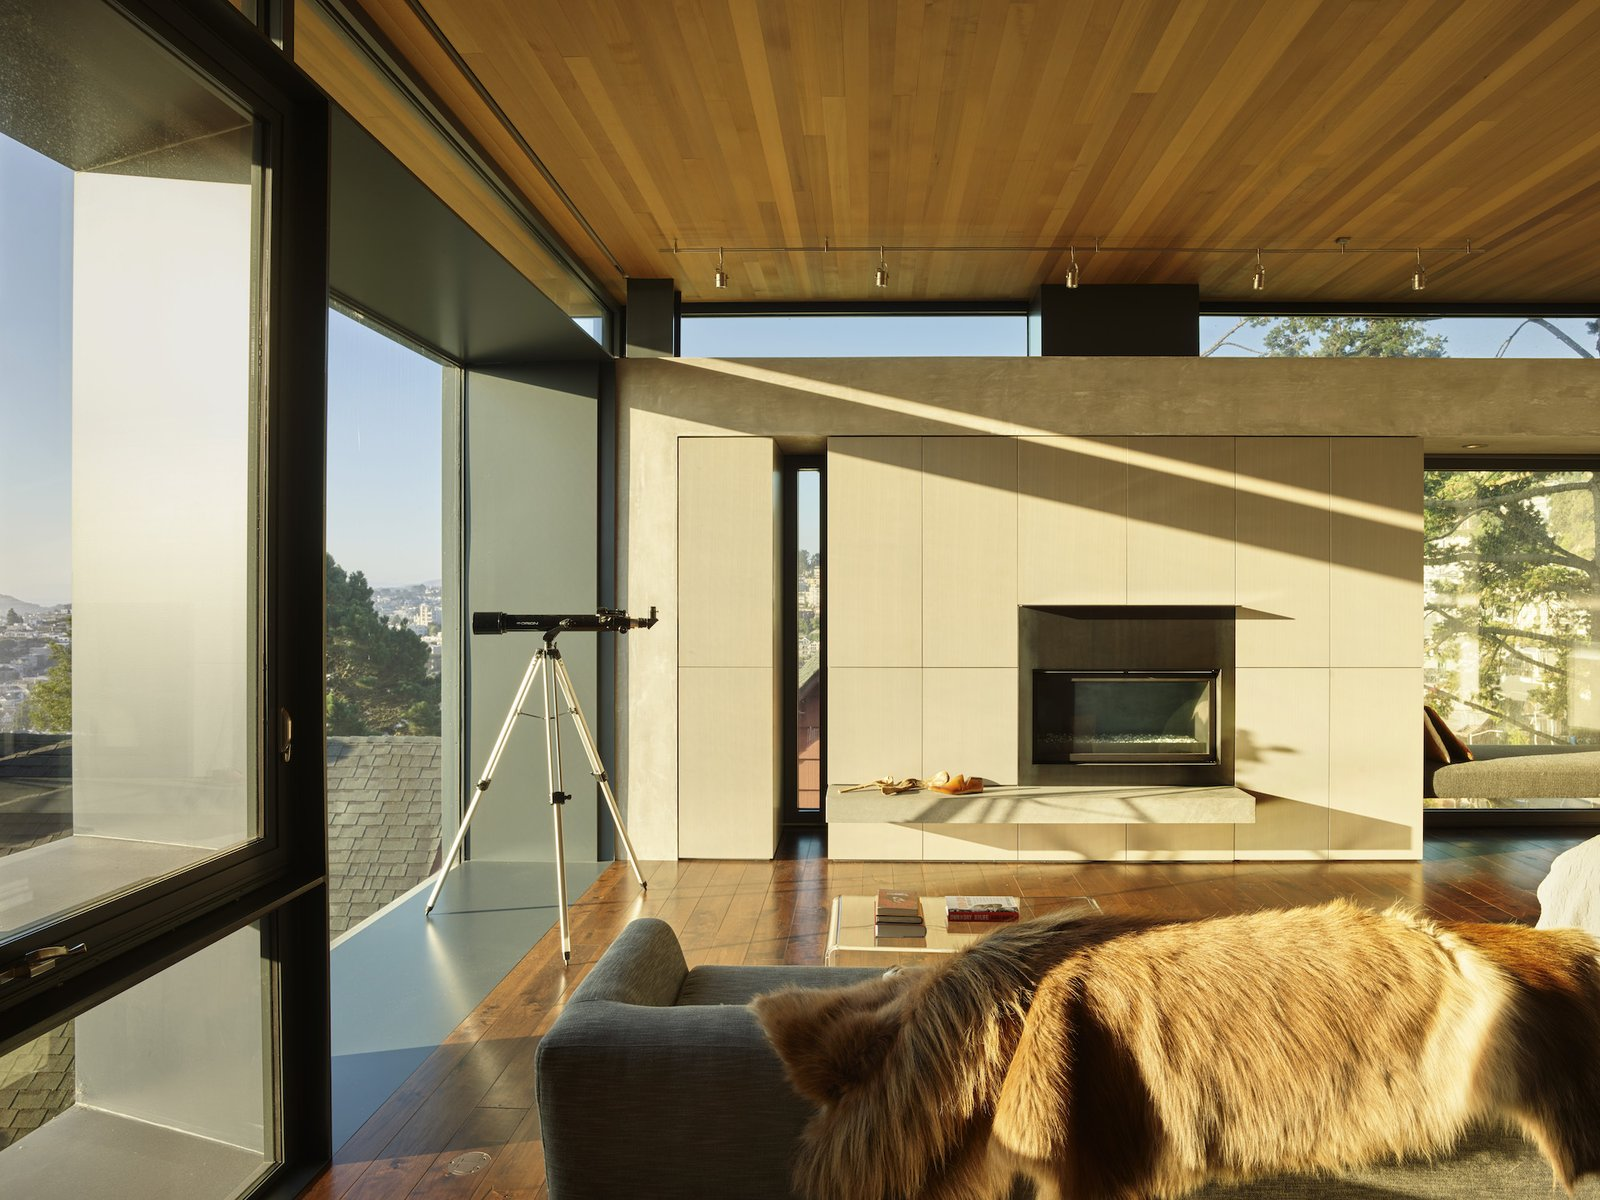 Living room of Terrace House by Aidlin Darling Design.